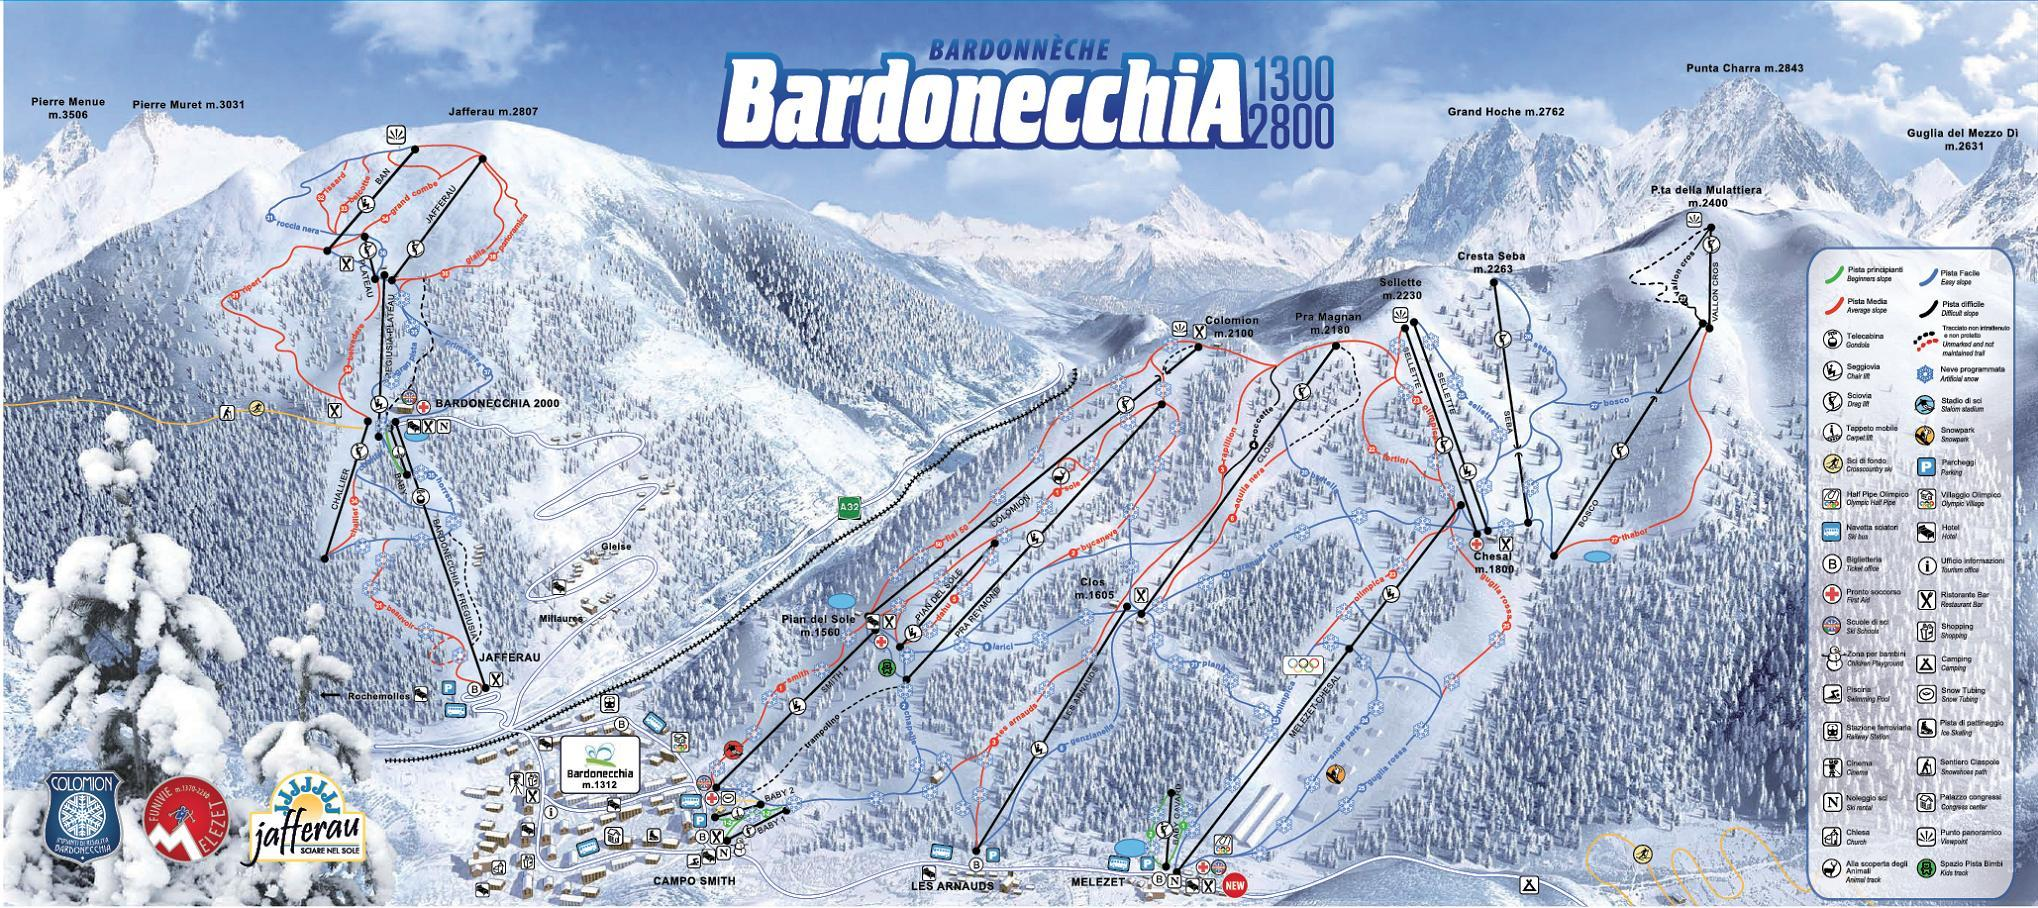 bardonecchia plan des pistes de ski bardonecchia. Black Bedroom Furniture Sets. Home Design Ideas